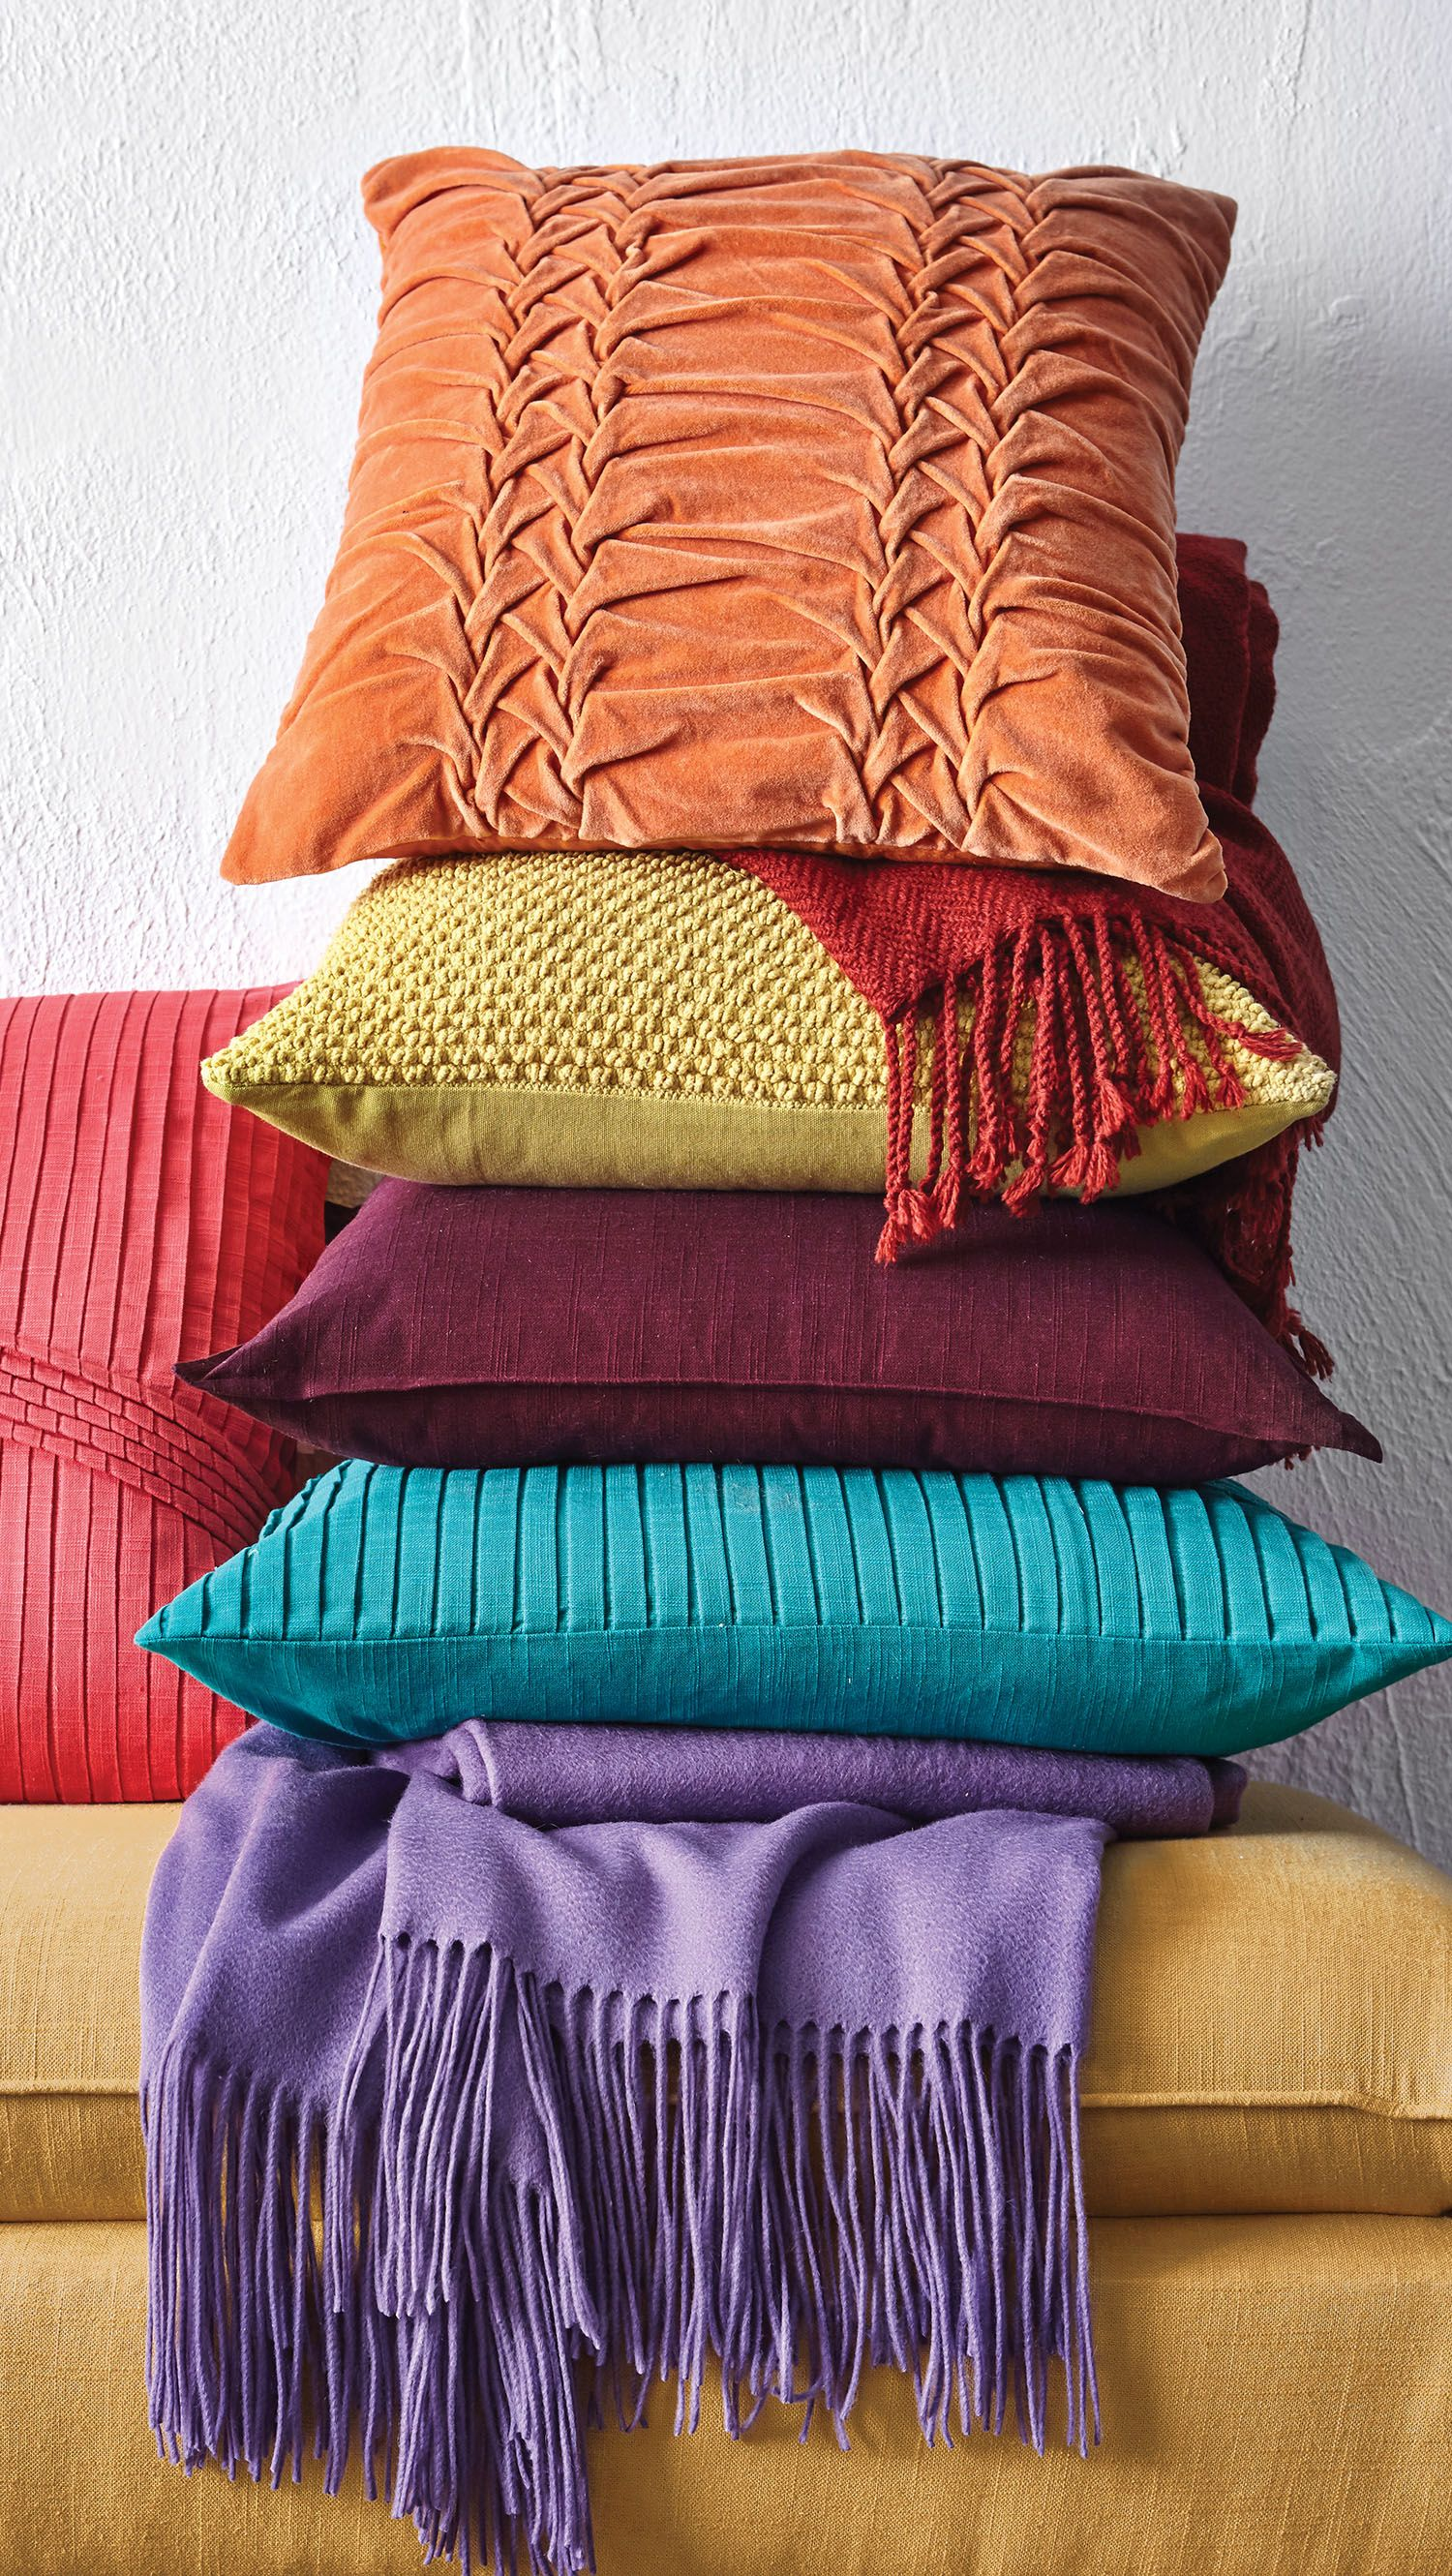 Colorful Throw Blankets Enchanting These Pillows Look So Soft And So Colorfuladd Depth To Your Decorating Inspiration